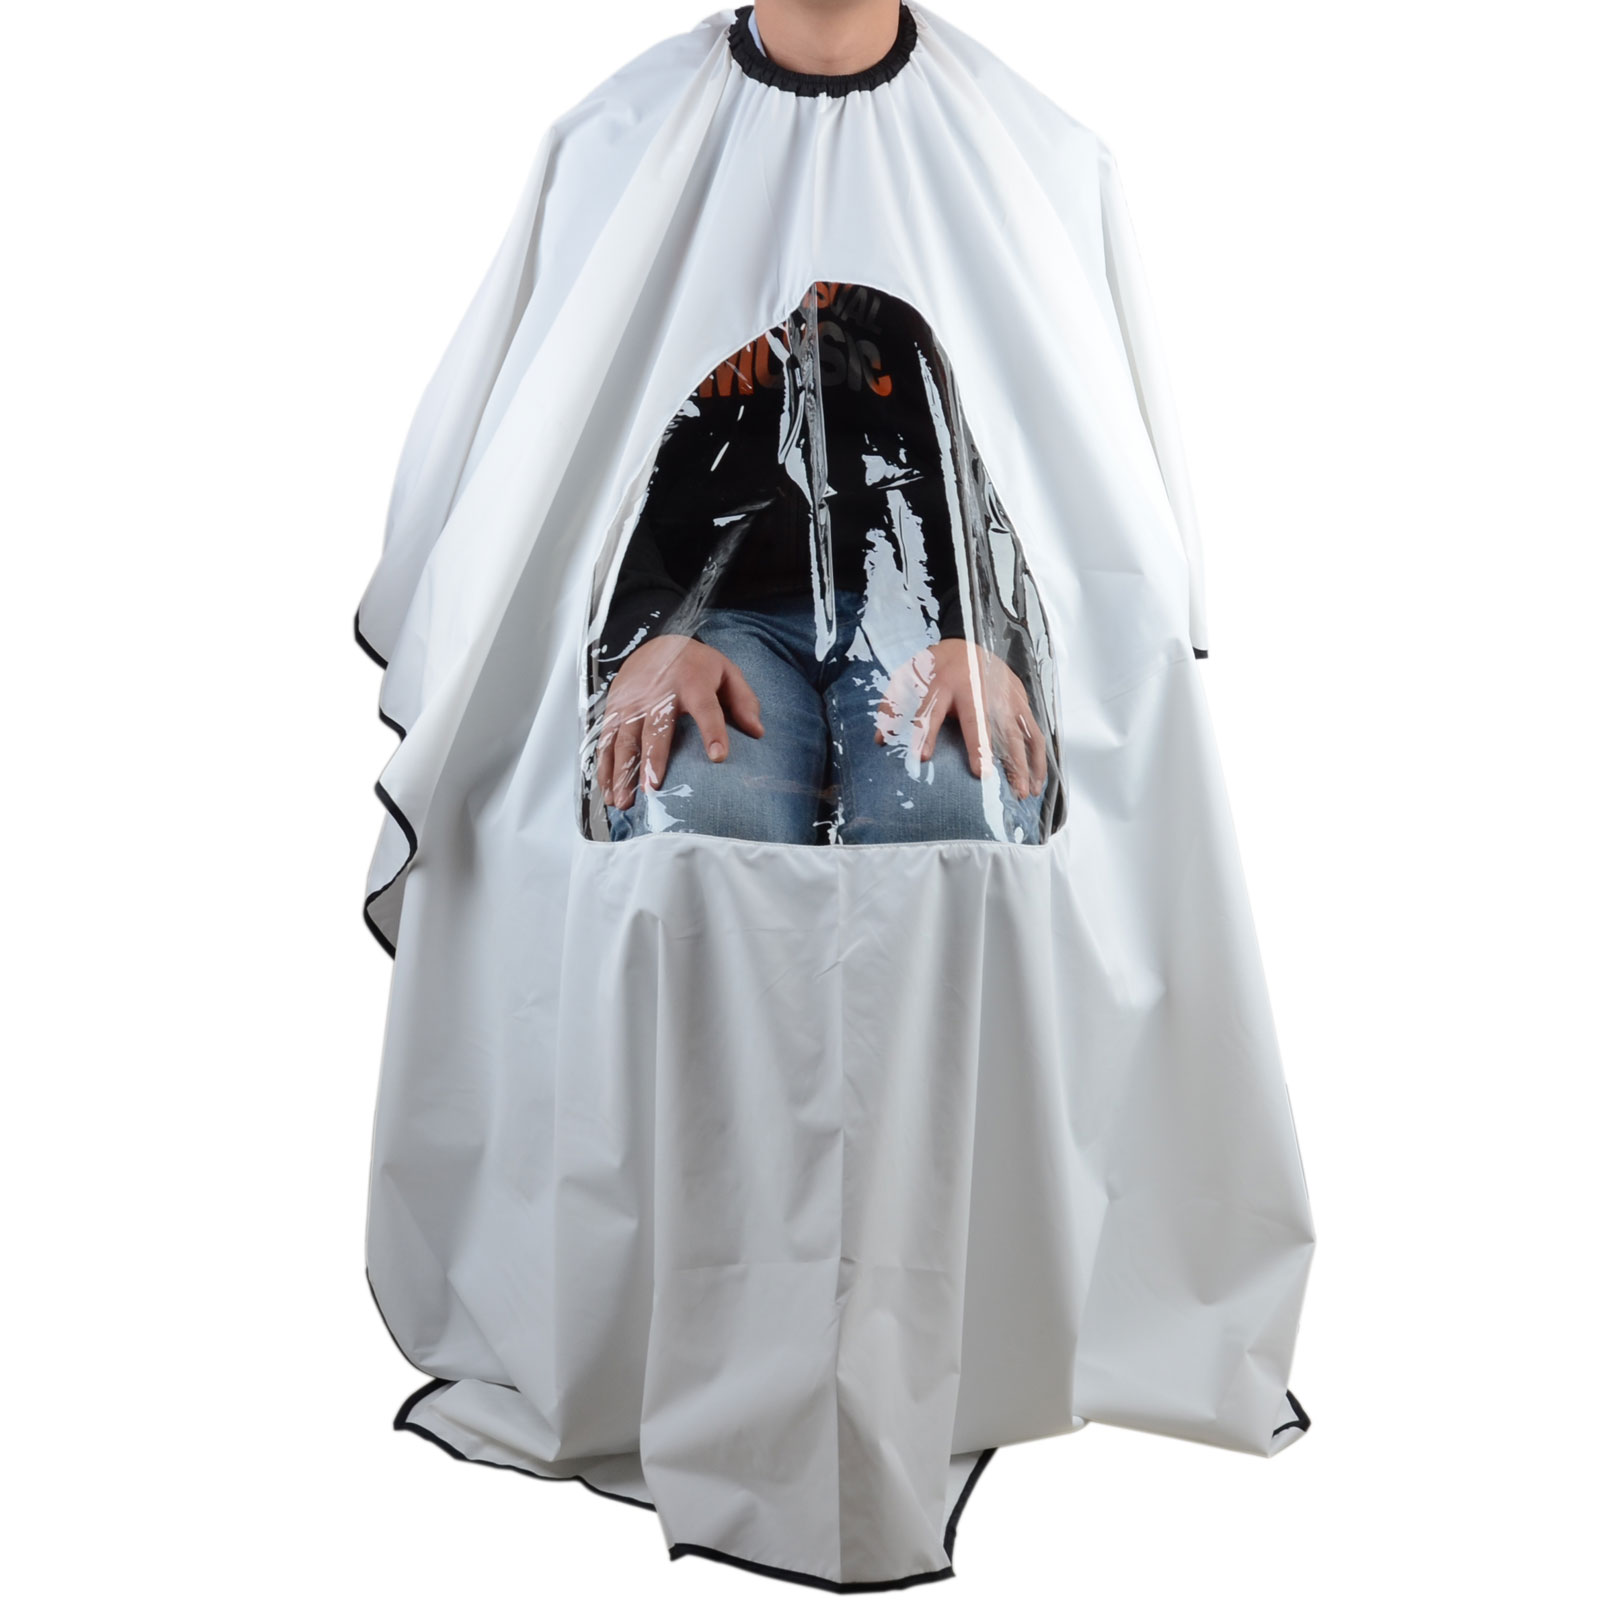 Details about Pro Salon Barber Hair Cutting Gown Cape With Viewing Window  Hairdresser Apron h